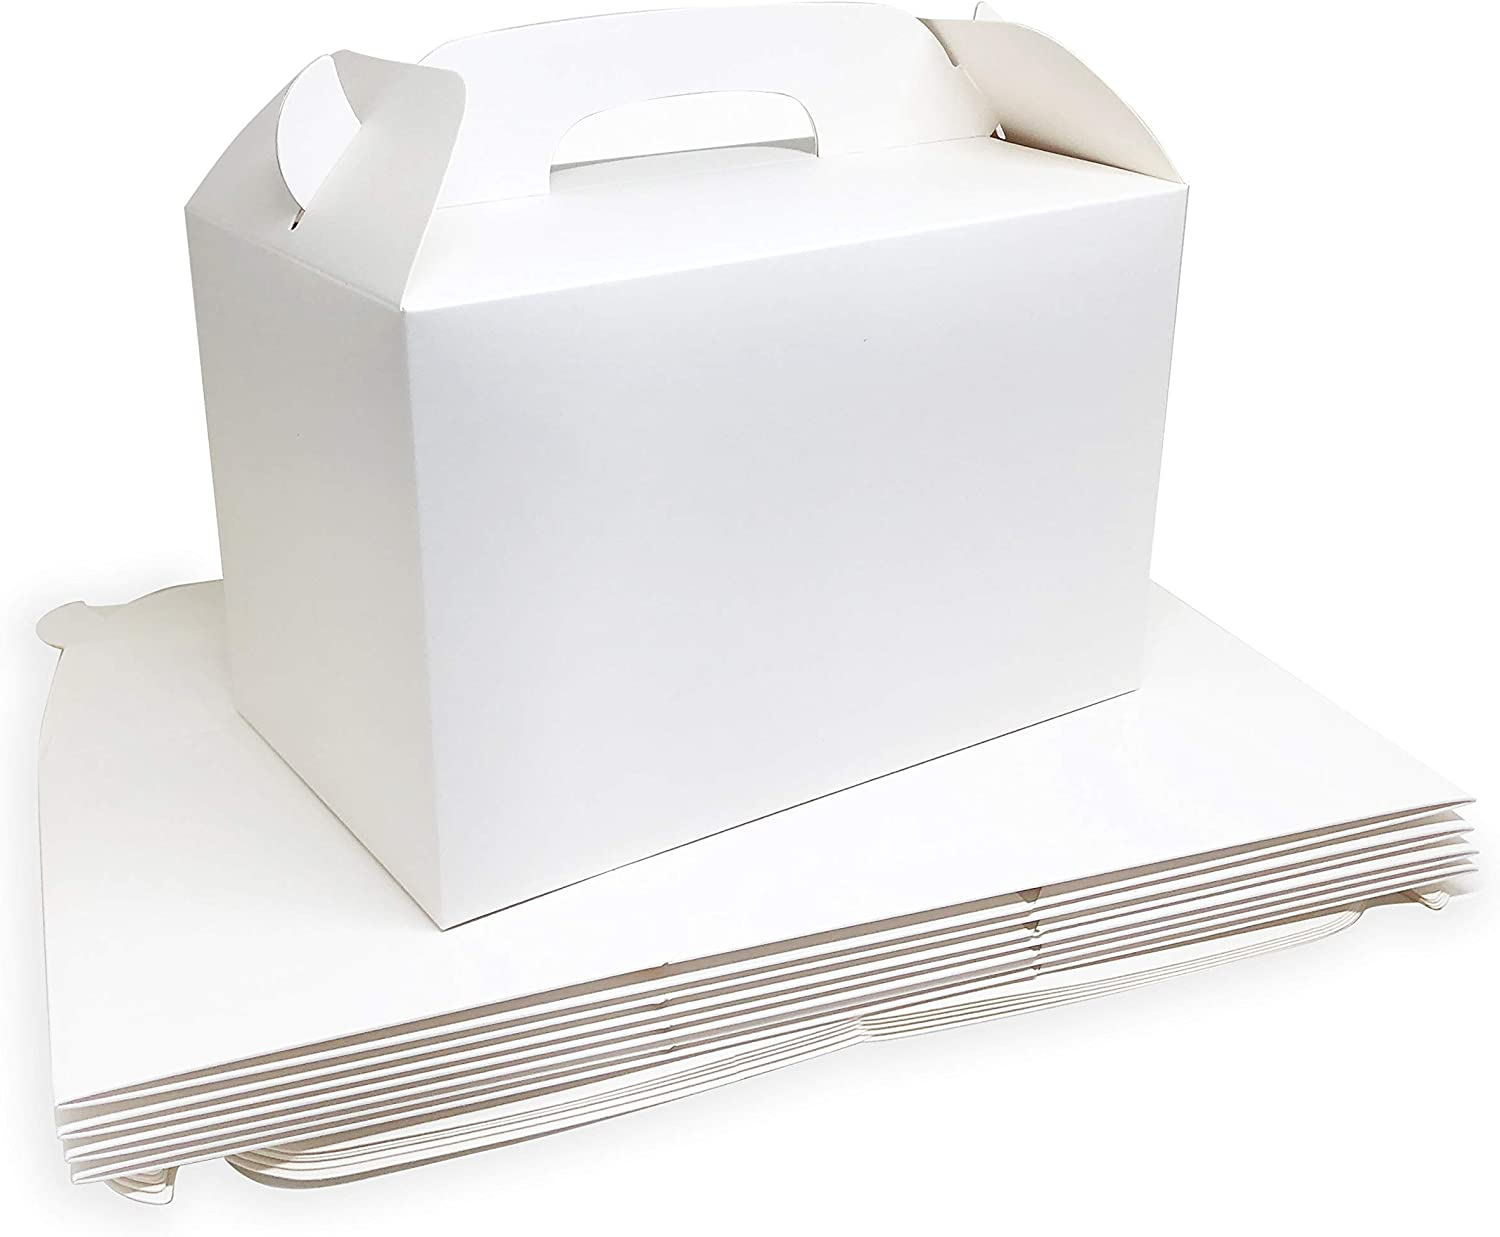 MintieJamie White Treat Boxes 2 Dozen White Boxes for Favor 8.5X5X5.5 Inches Large Handle Favor Boxes, Kids Party Favor Box, Party Box, Birthday Goodies Box, No Assembly Needed